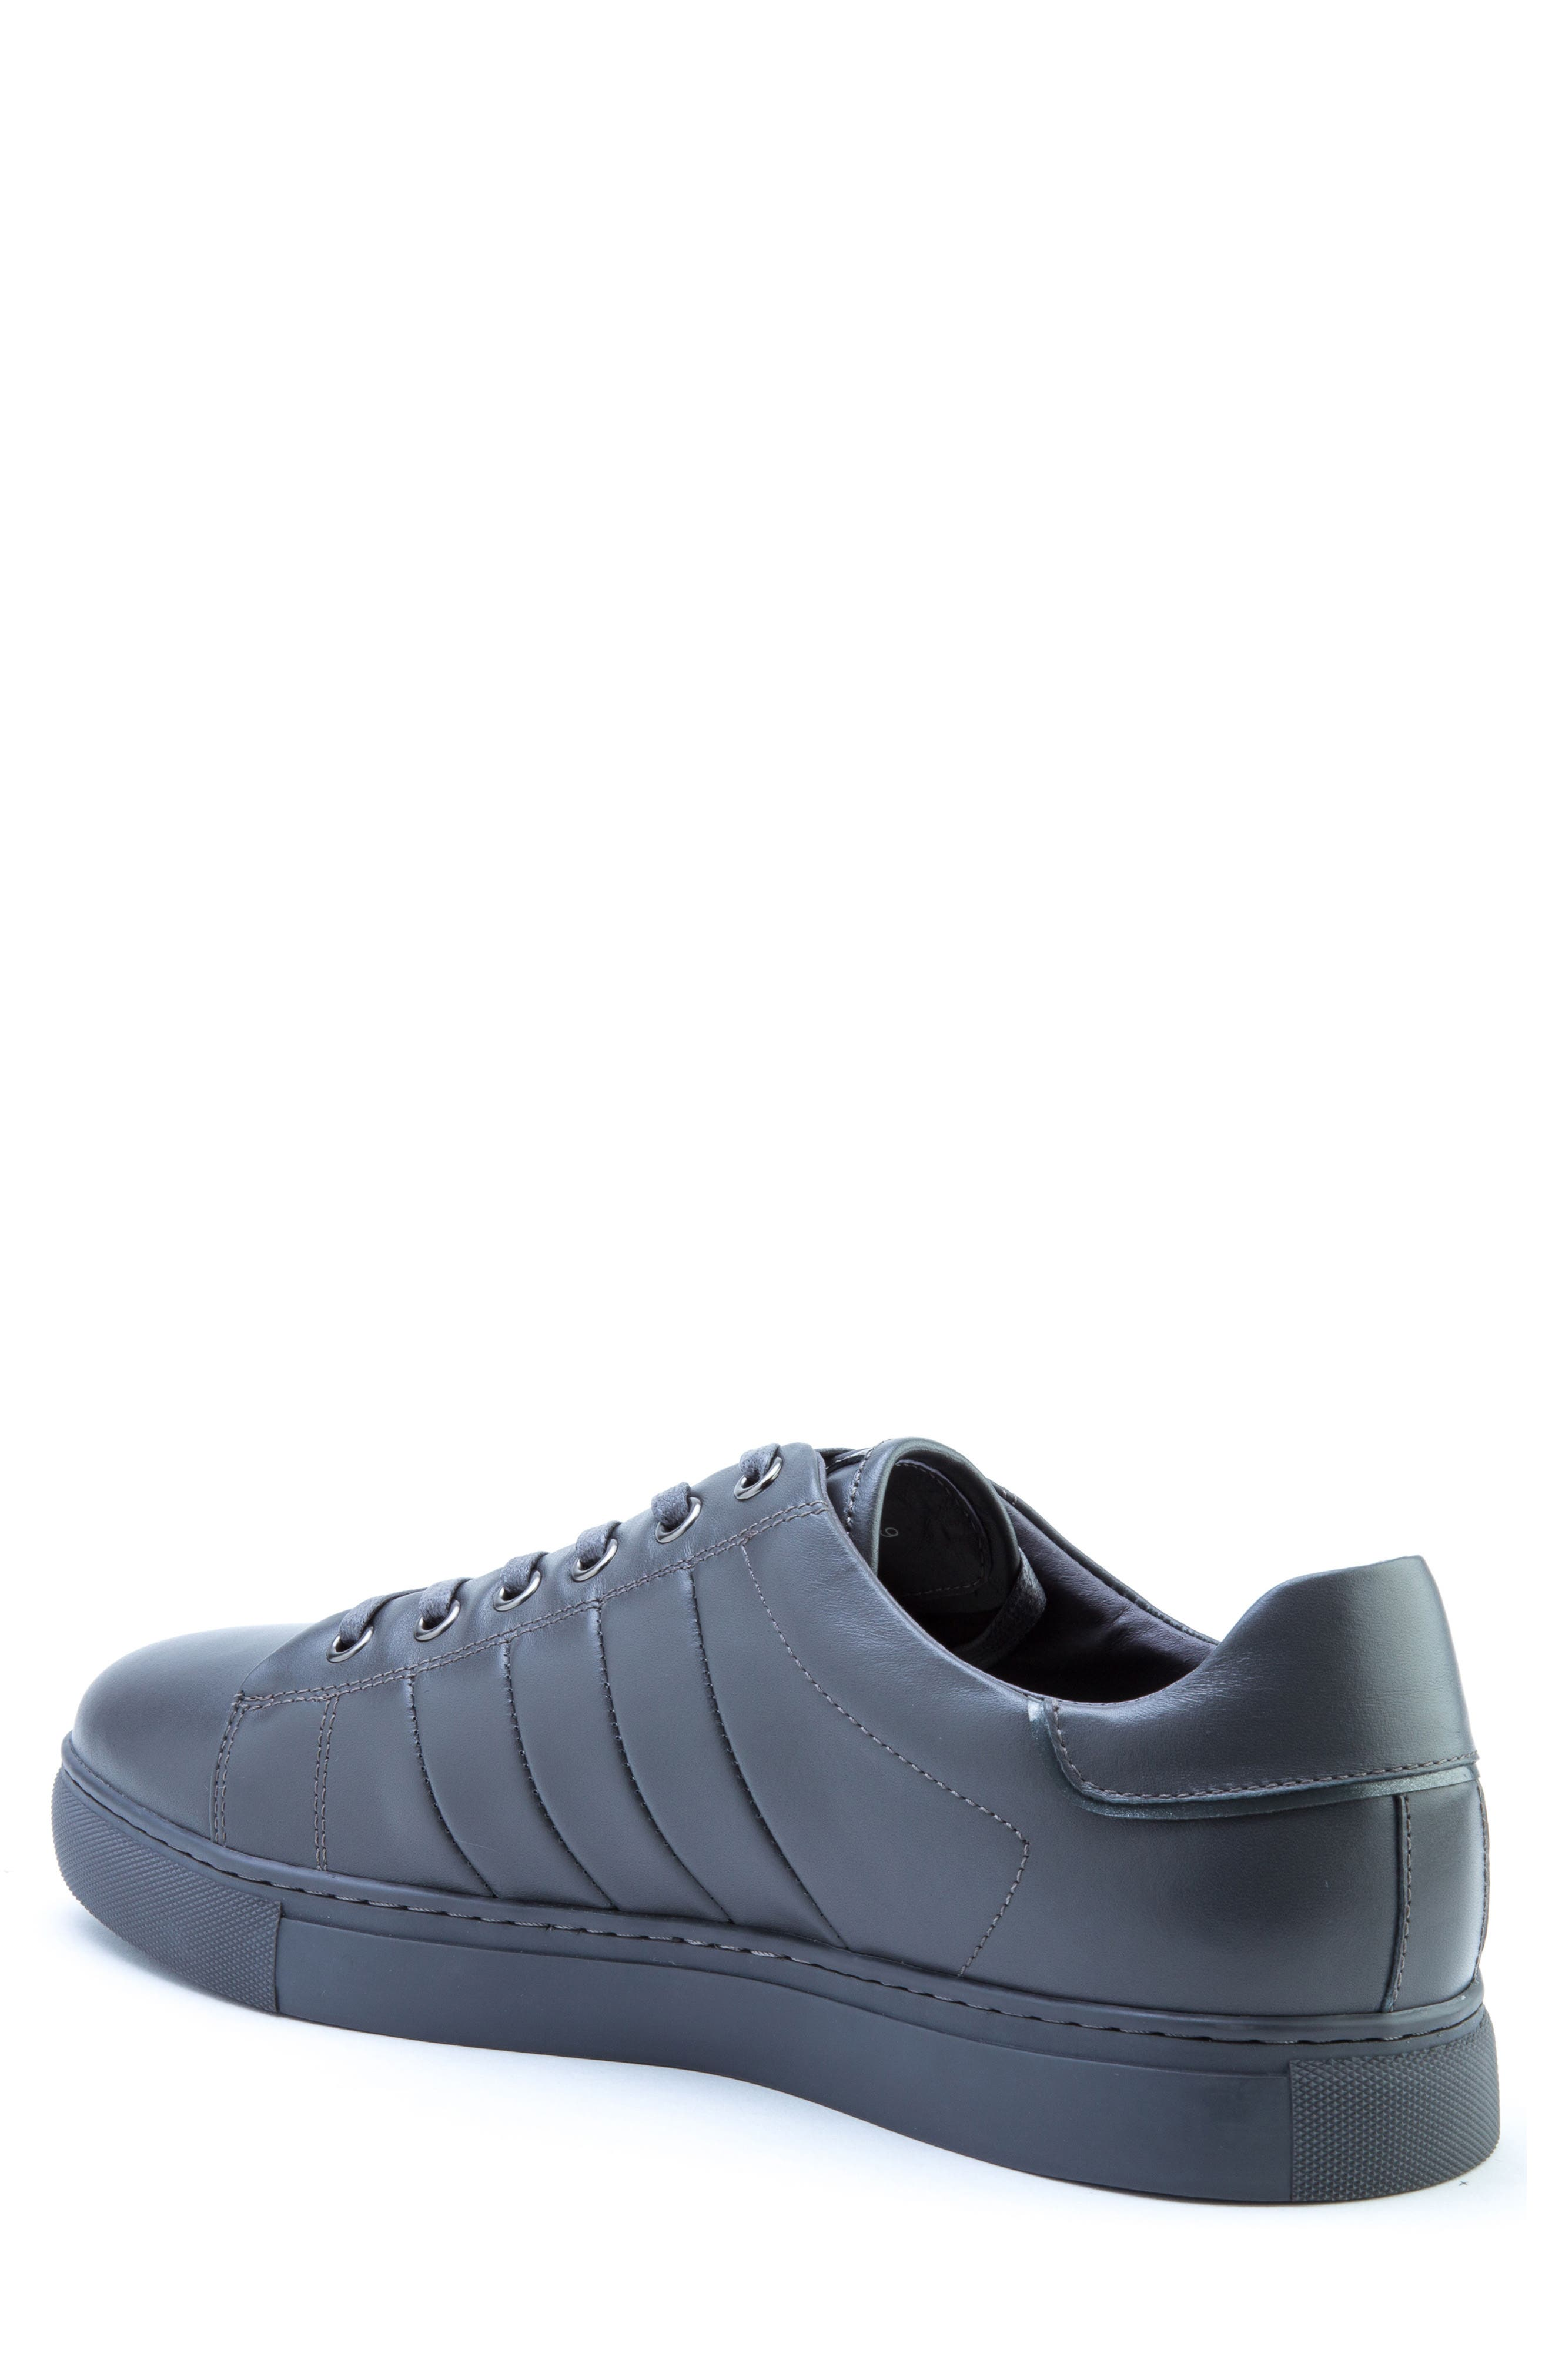 Mitchell Sneaker,                             Alternate thumbnail 2, color,                             GREY LEATHER